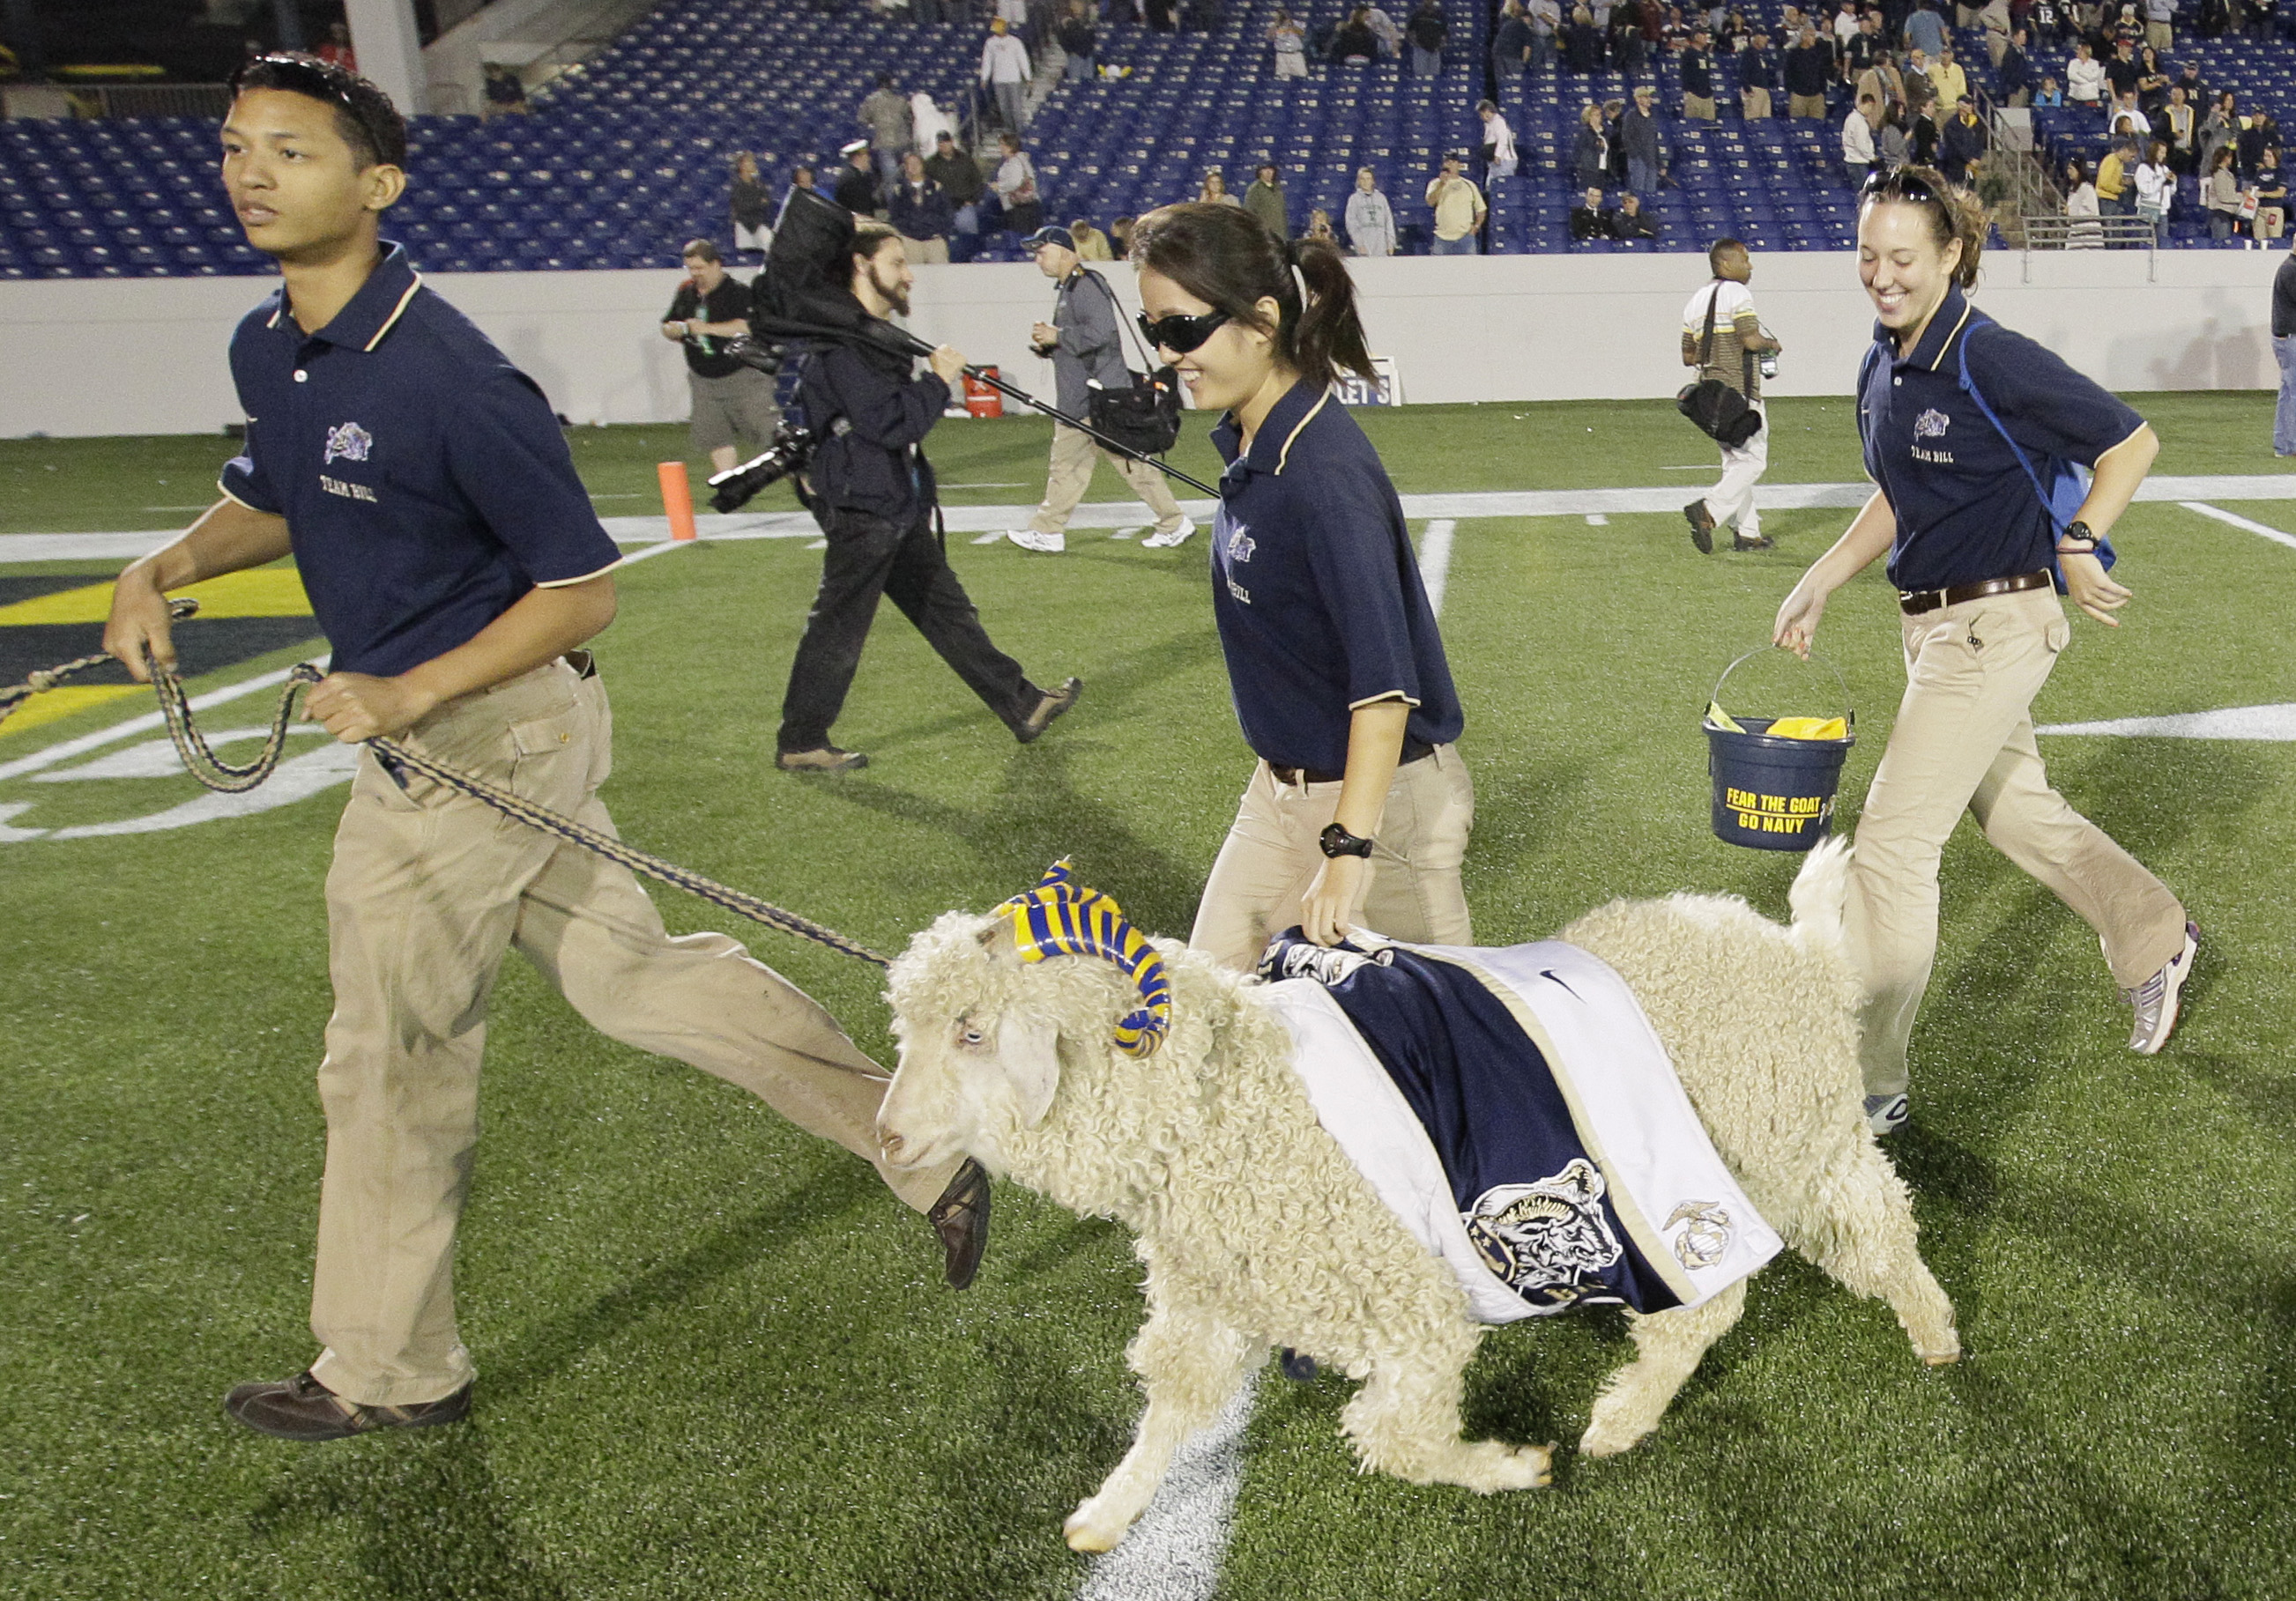 New mascot in training at Naval Academy